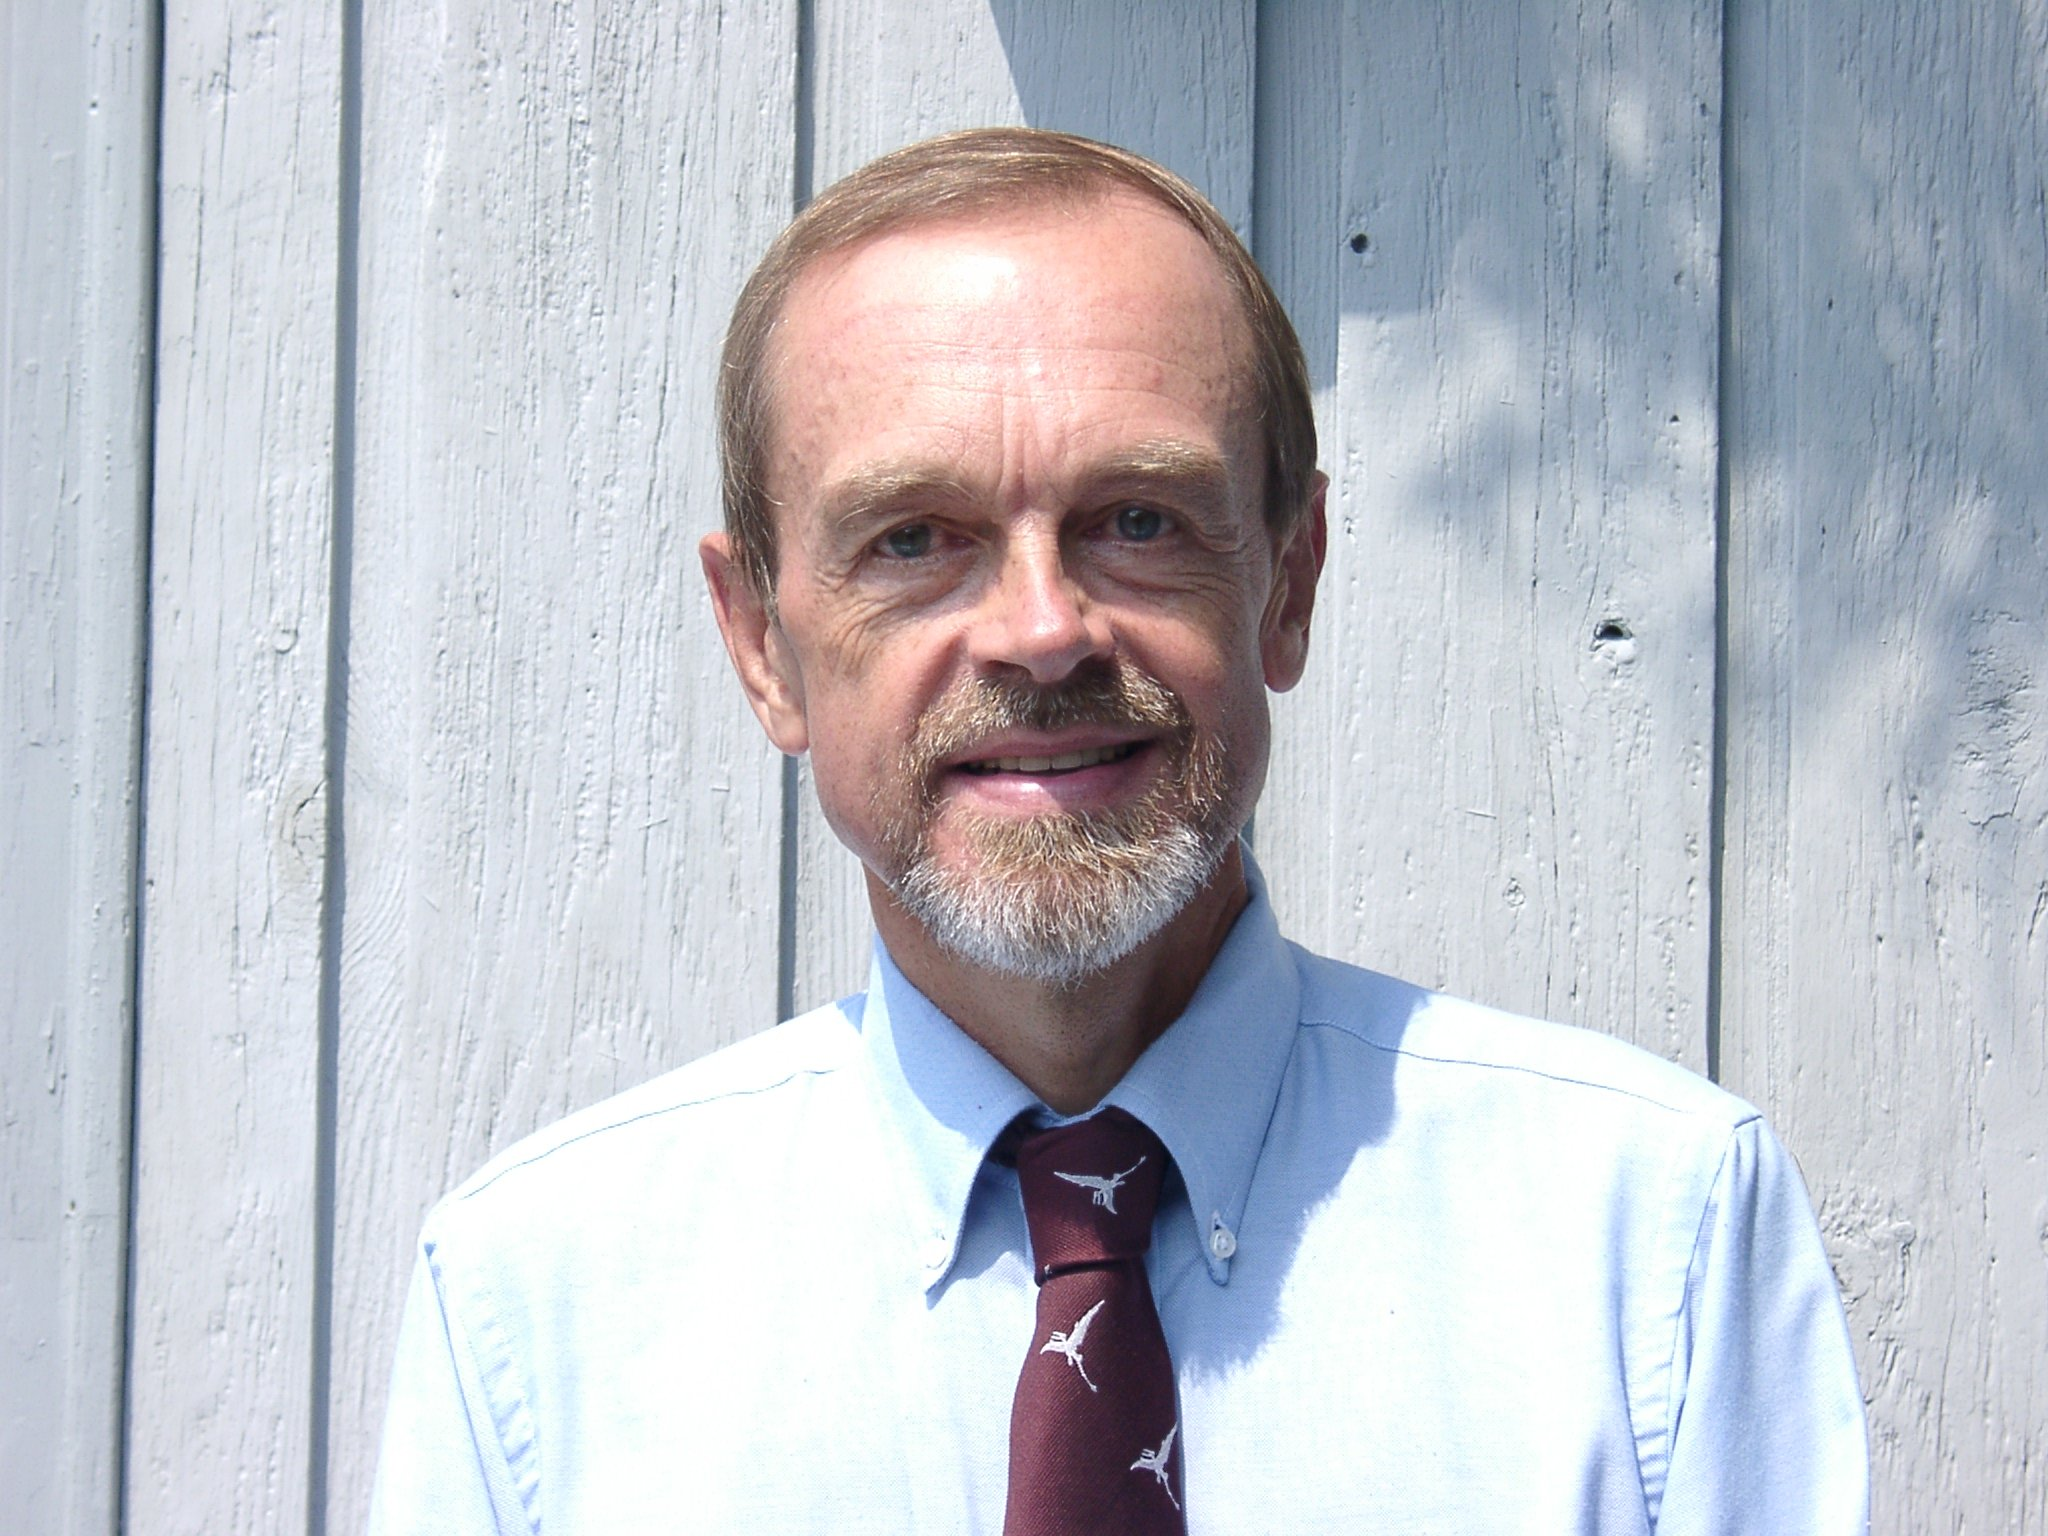 'Life After Faith' author Philip Kitcher